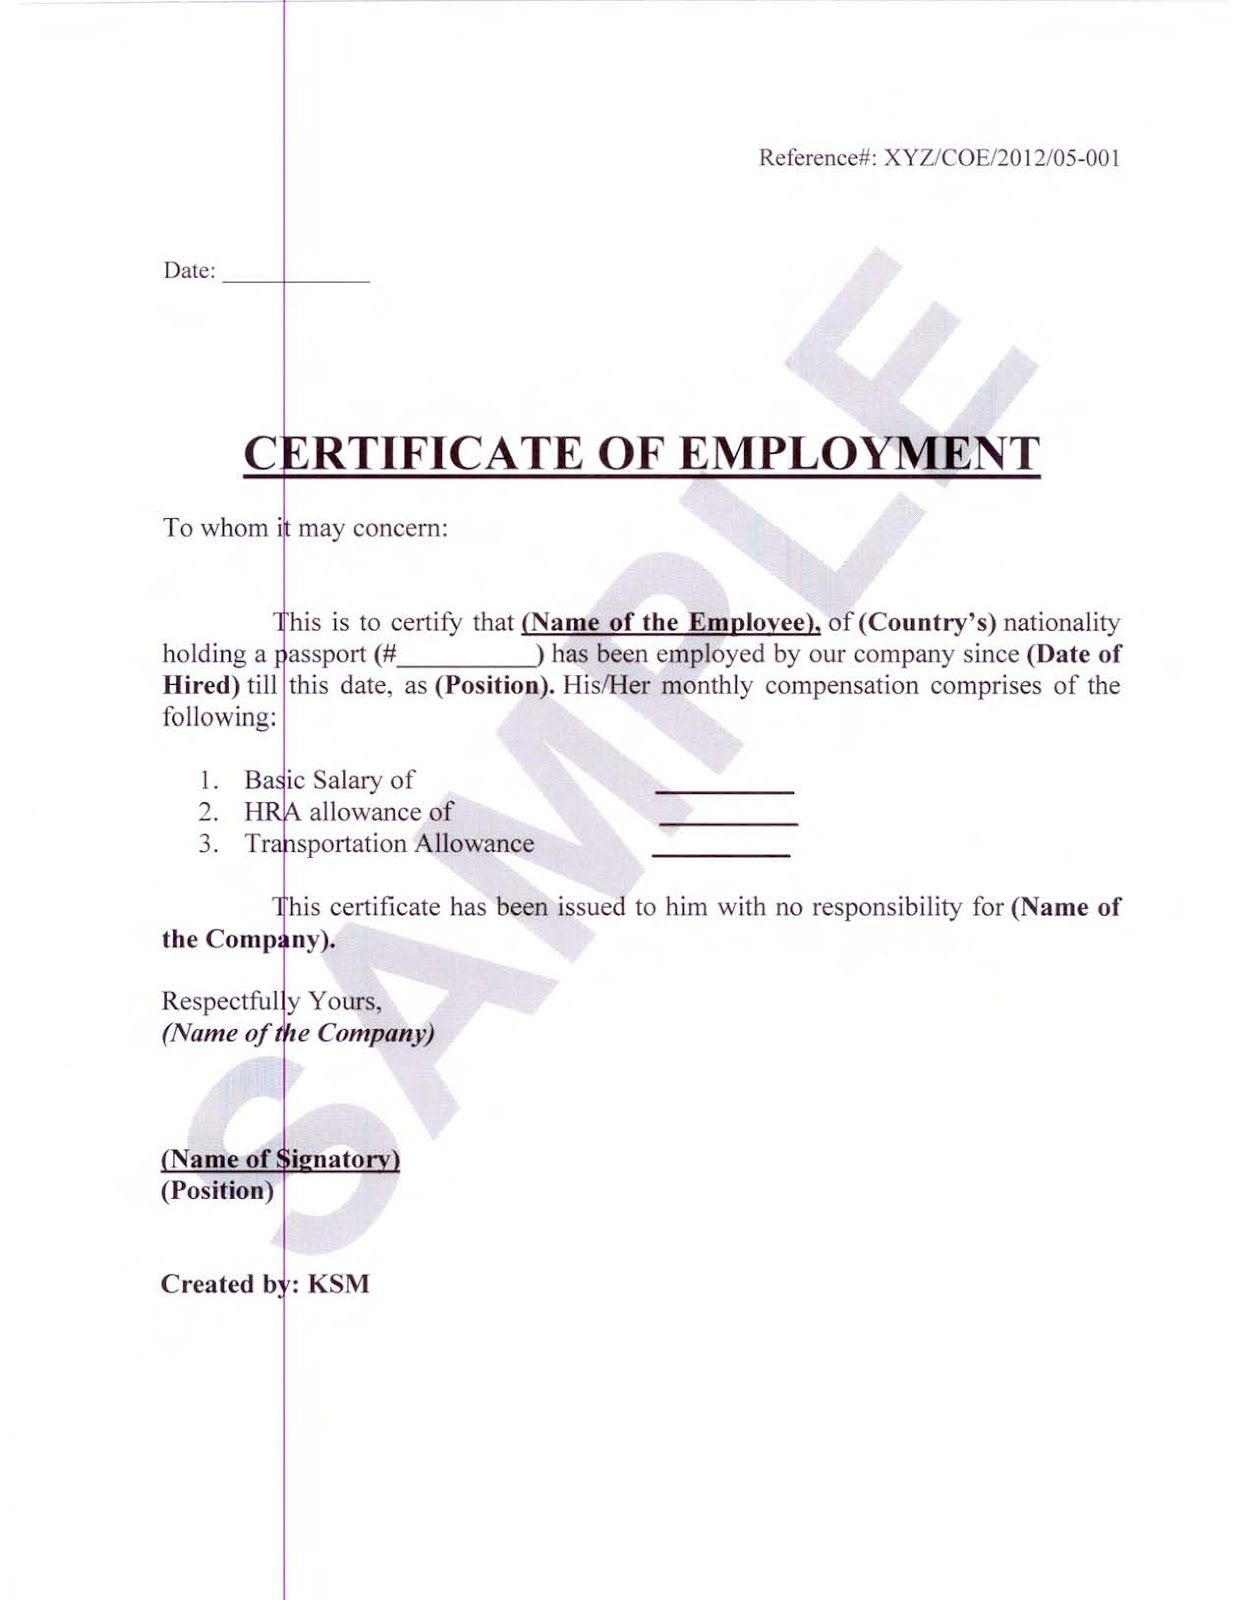 Certificate employment sample format fieldstation certificate employment sample format spiritdancerdesigns Choice Image